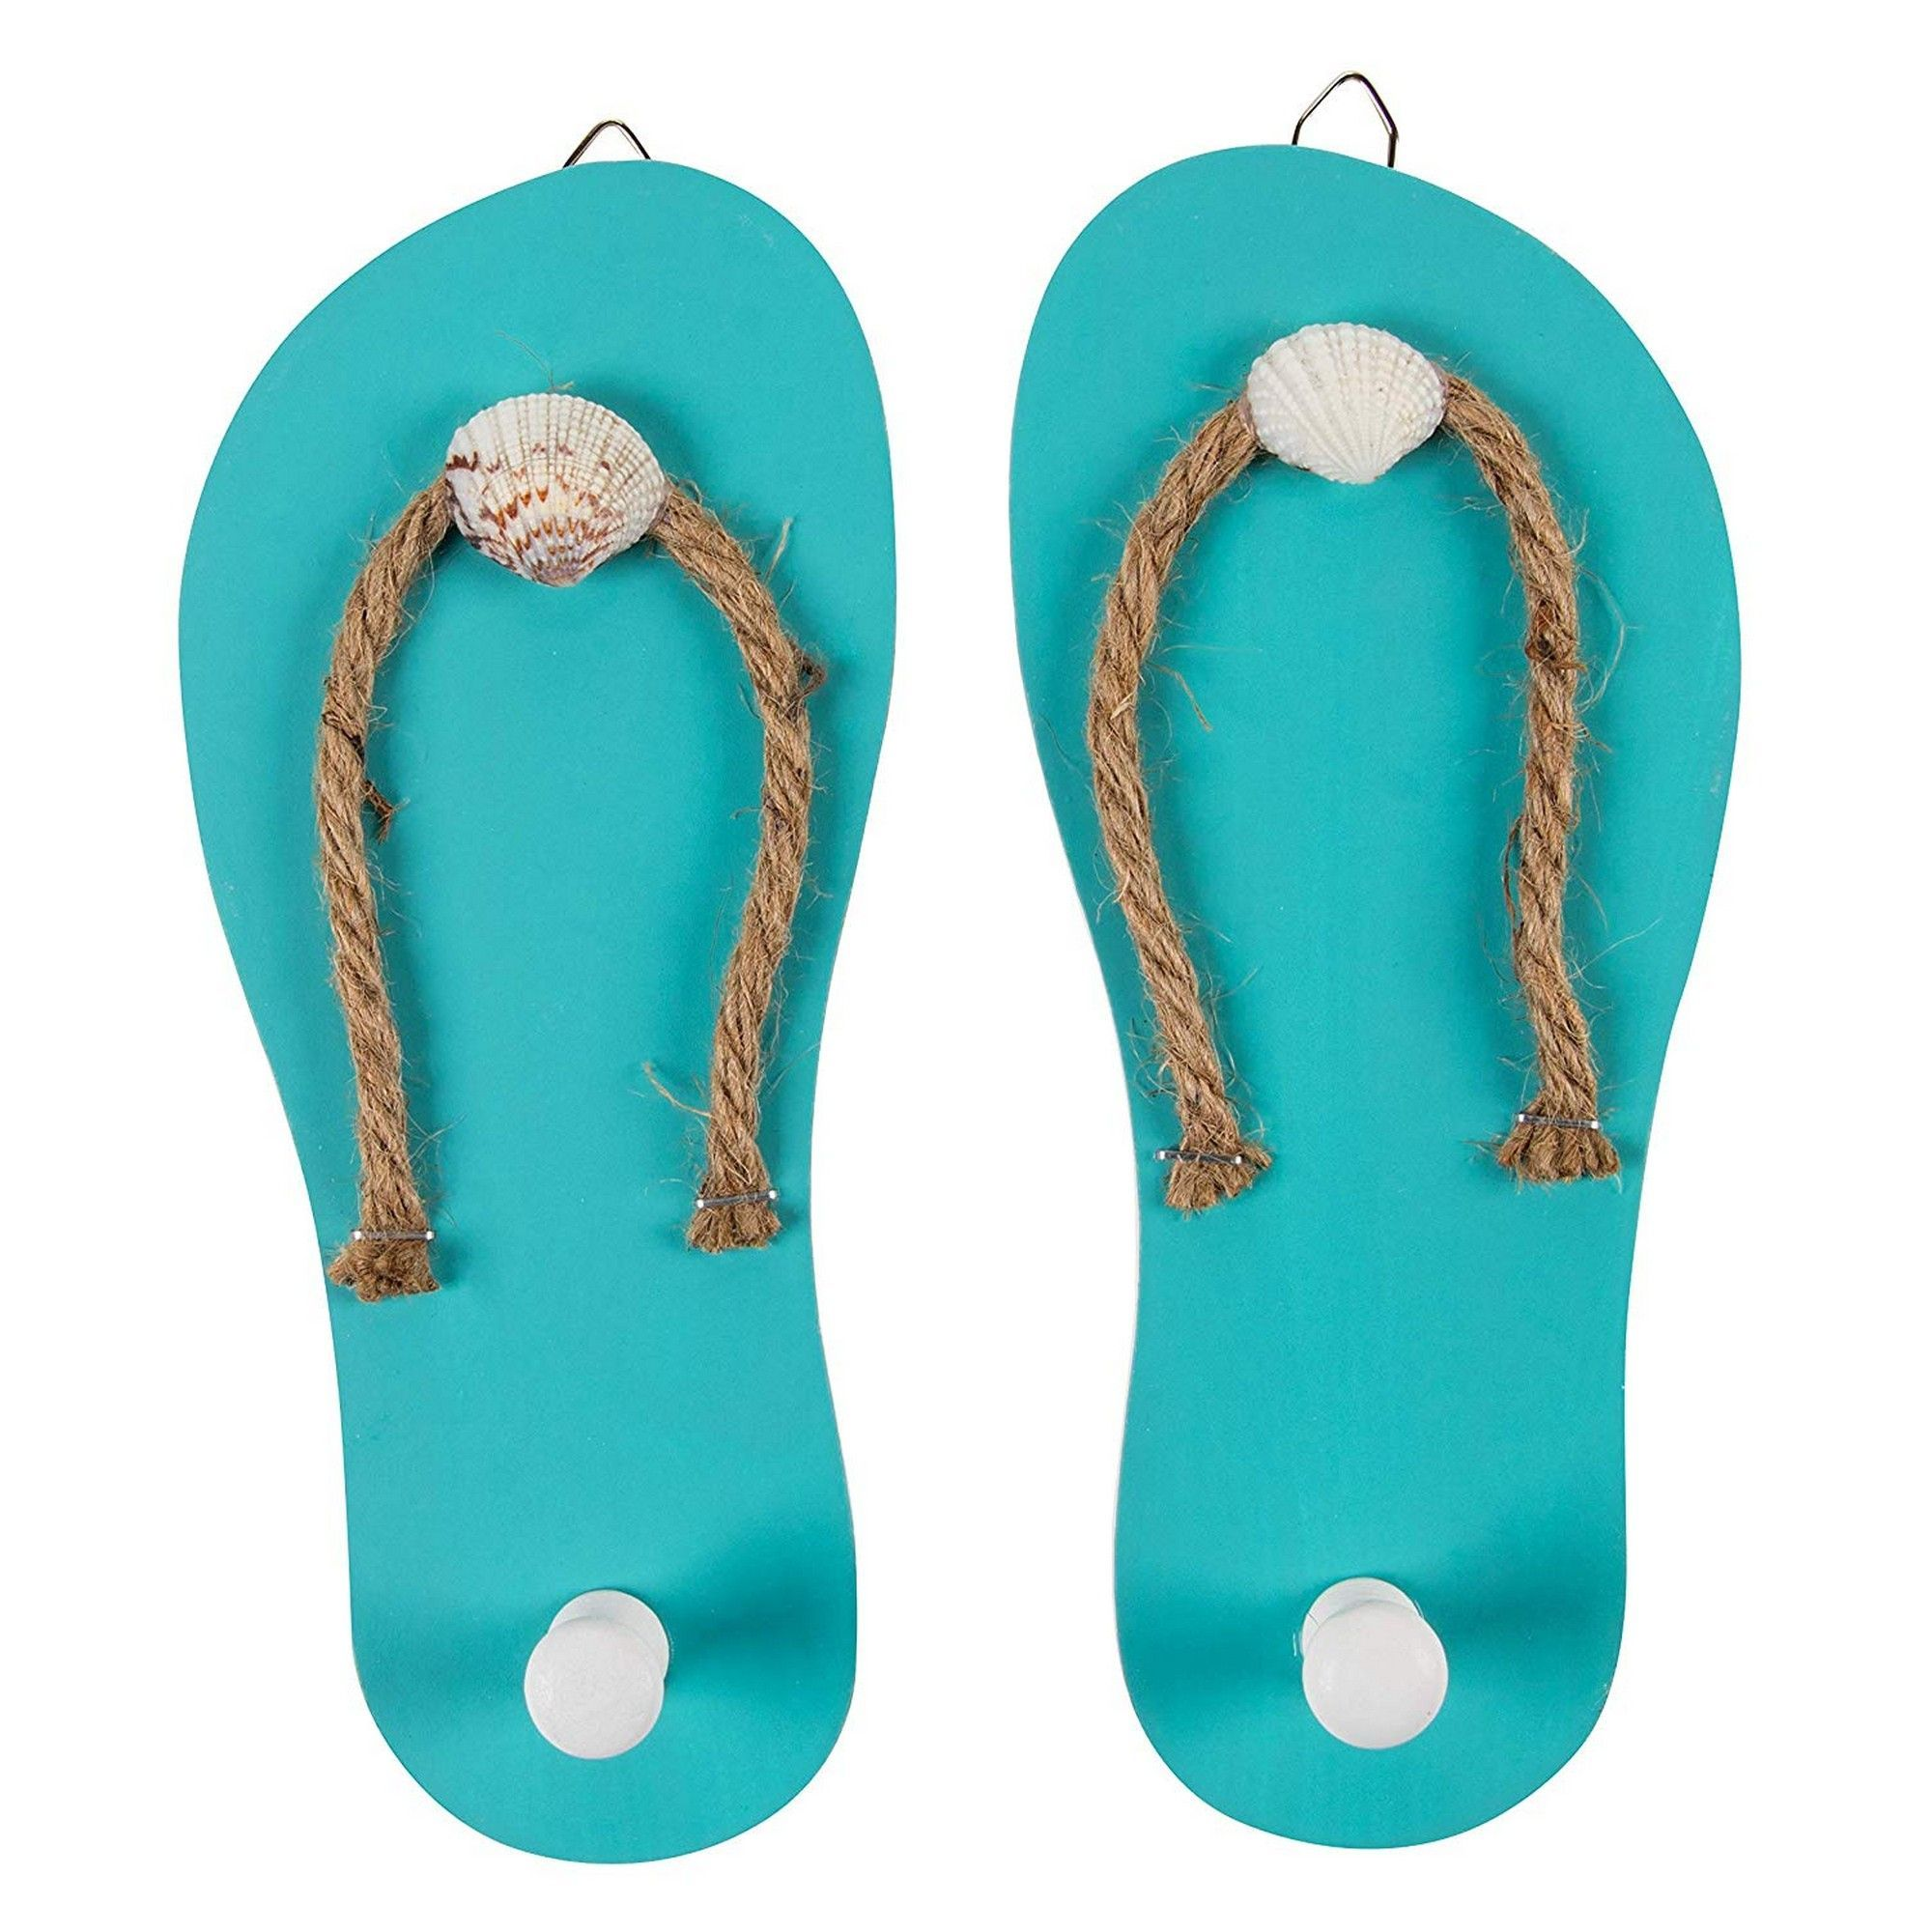 Wooden Flip Flop Shaped Ornament Hooks 1 Pair Wall Hook With Beach Nautical Designed Decoration For Bathroom Bedroom And Kitchen Turquoise Blue 8 6 X 3 75 X 0 3 Inches Each Walmart Com Walmart Com